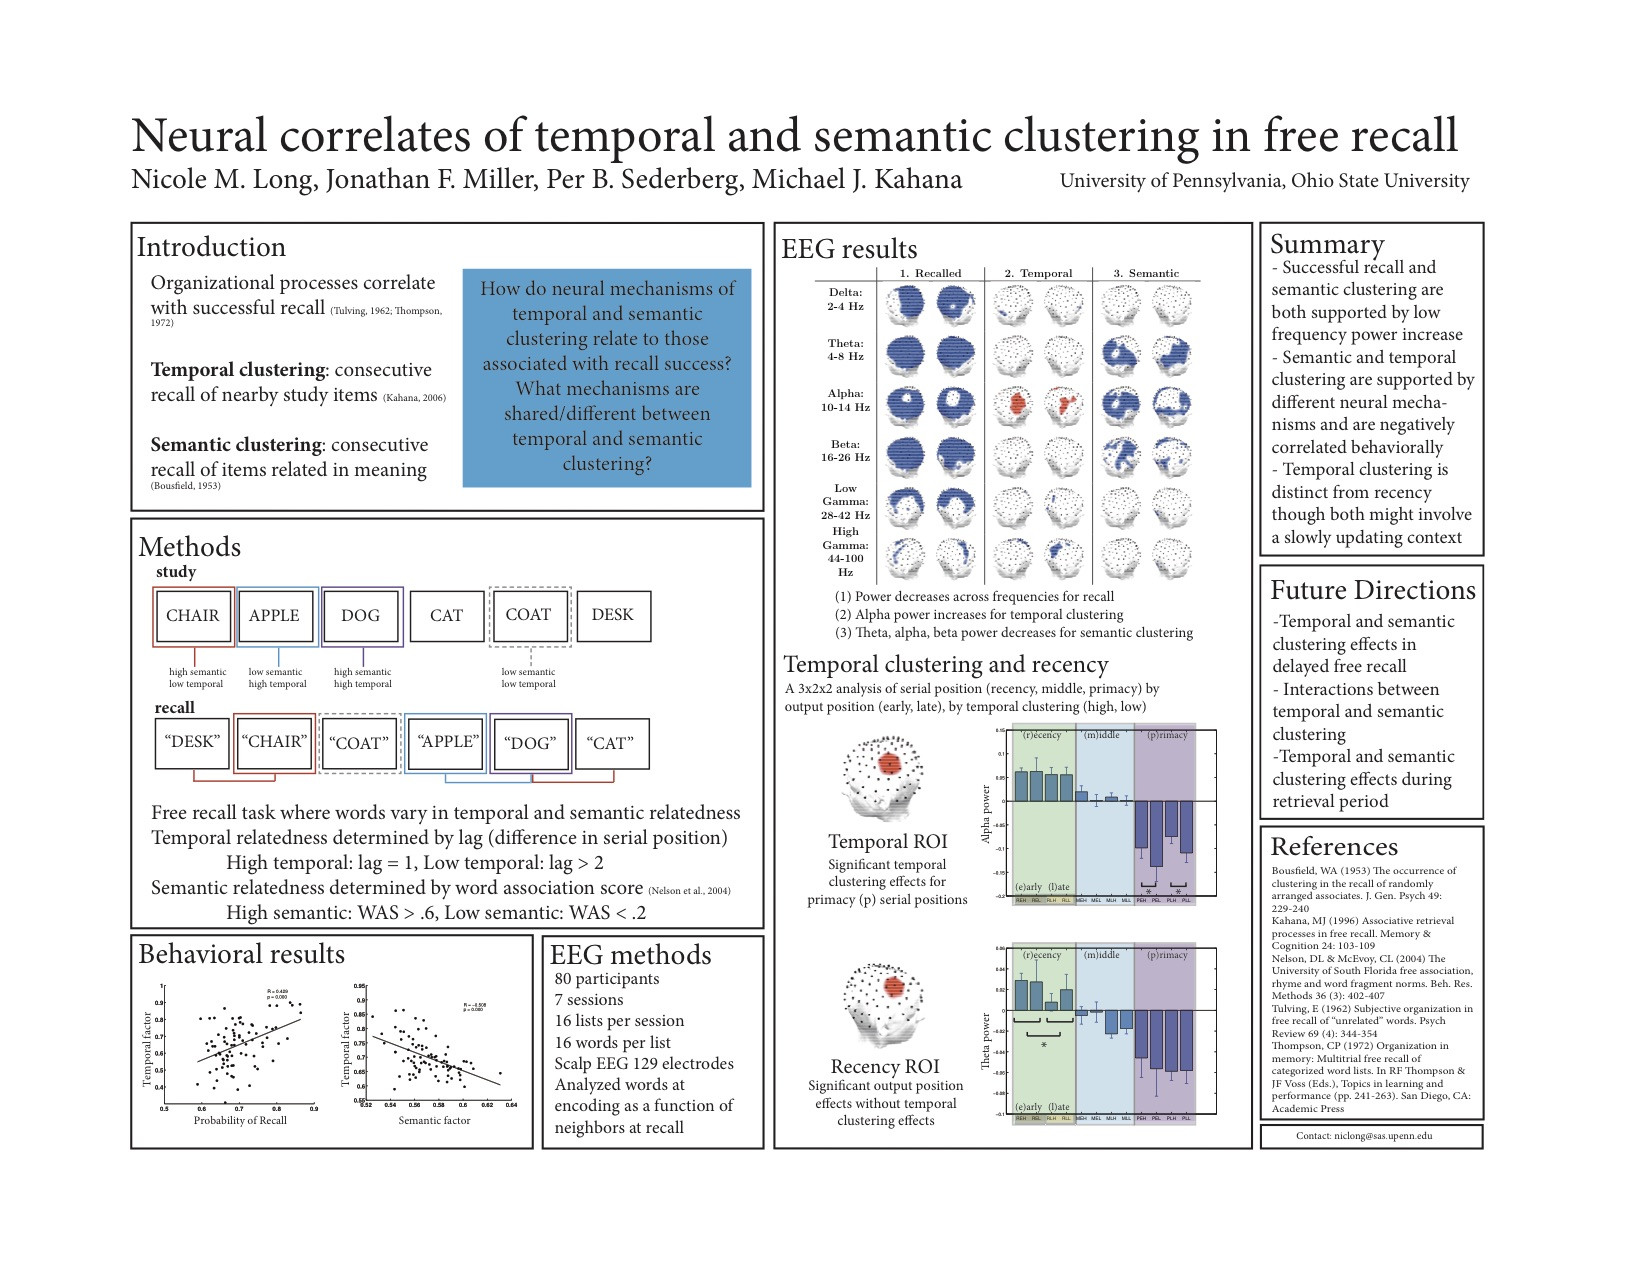 Neural correlates of temporal and semantic clustering in free recall